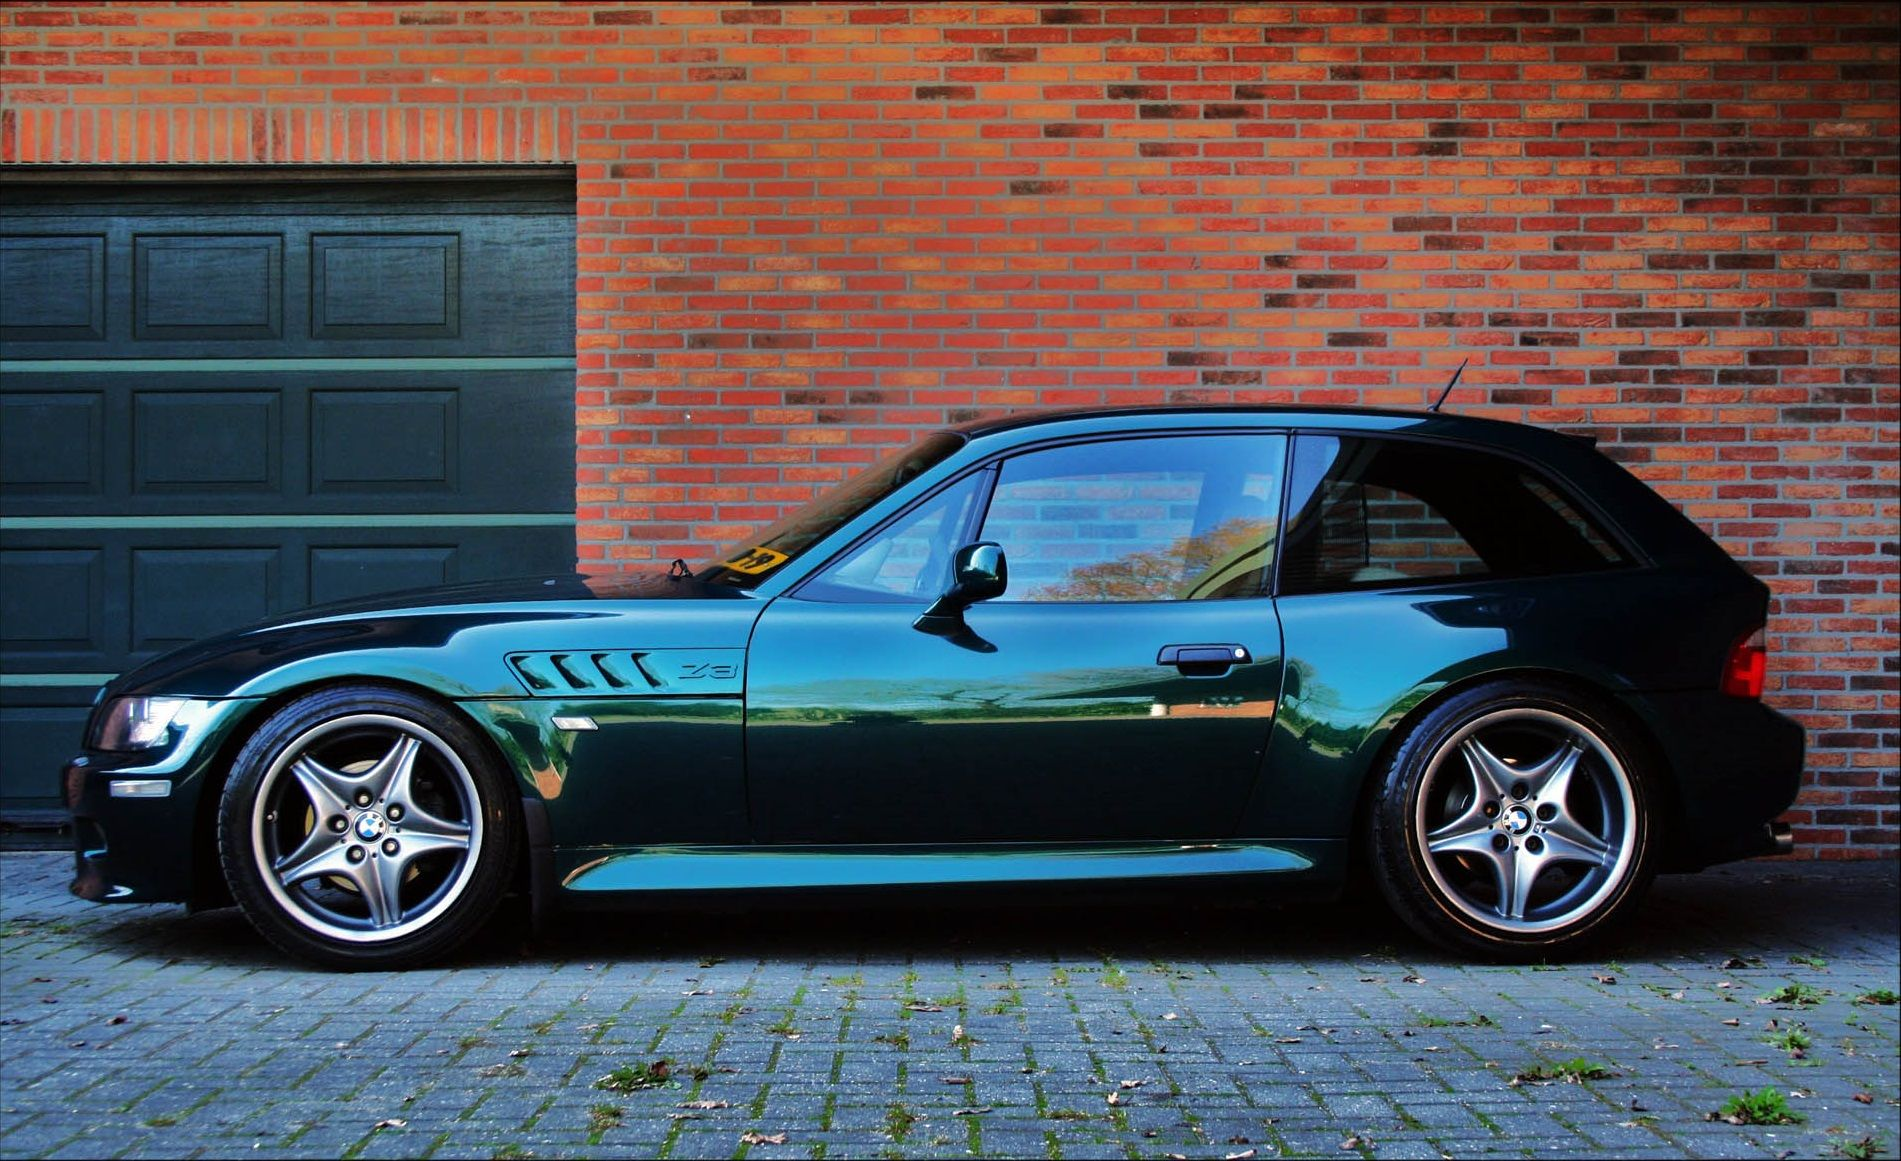 bmw z3 coupe oxford green cars pinterest bmw z3 coupe and bmw. Black Bedroom Furniture Sets. Home Design Ideas